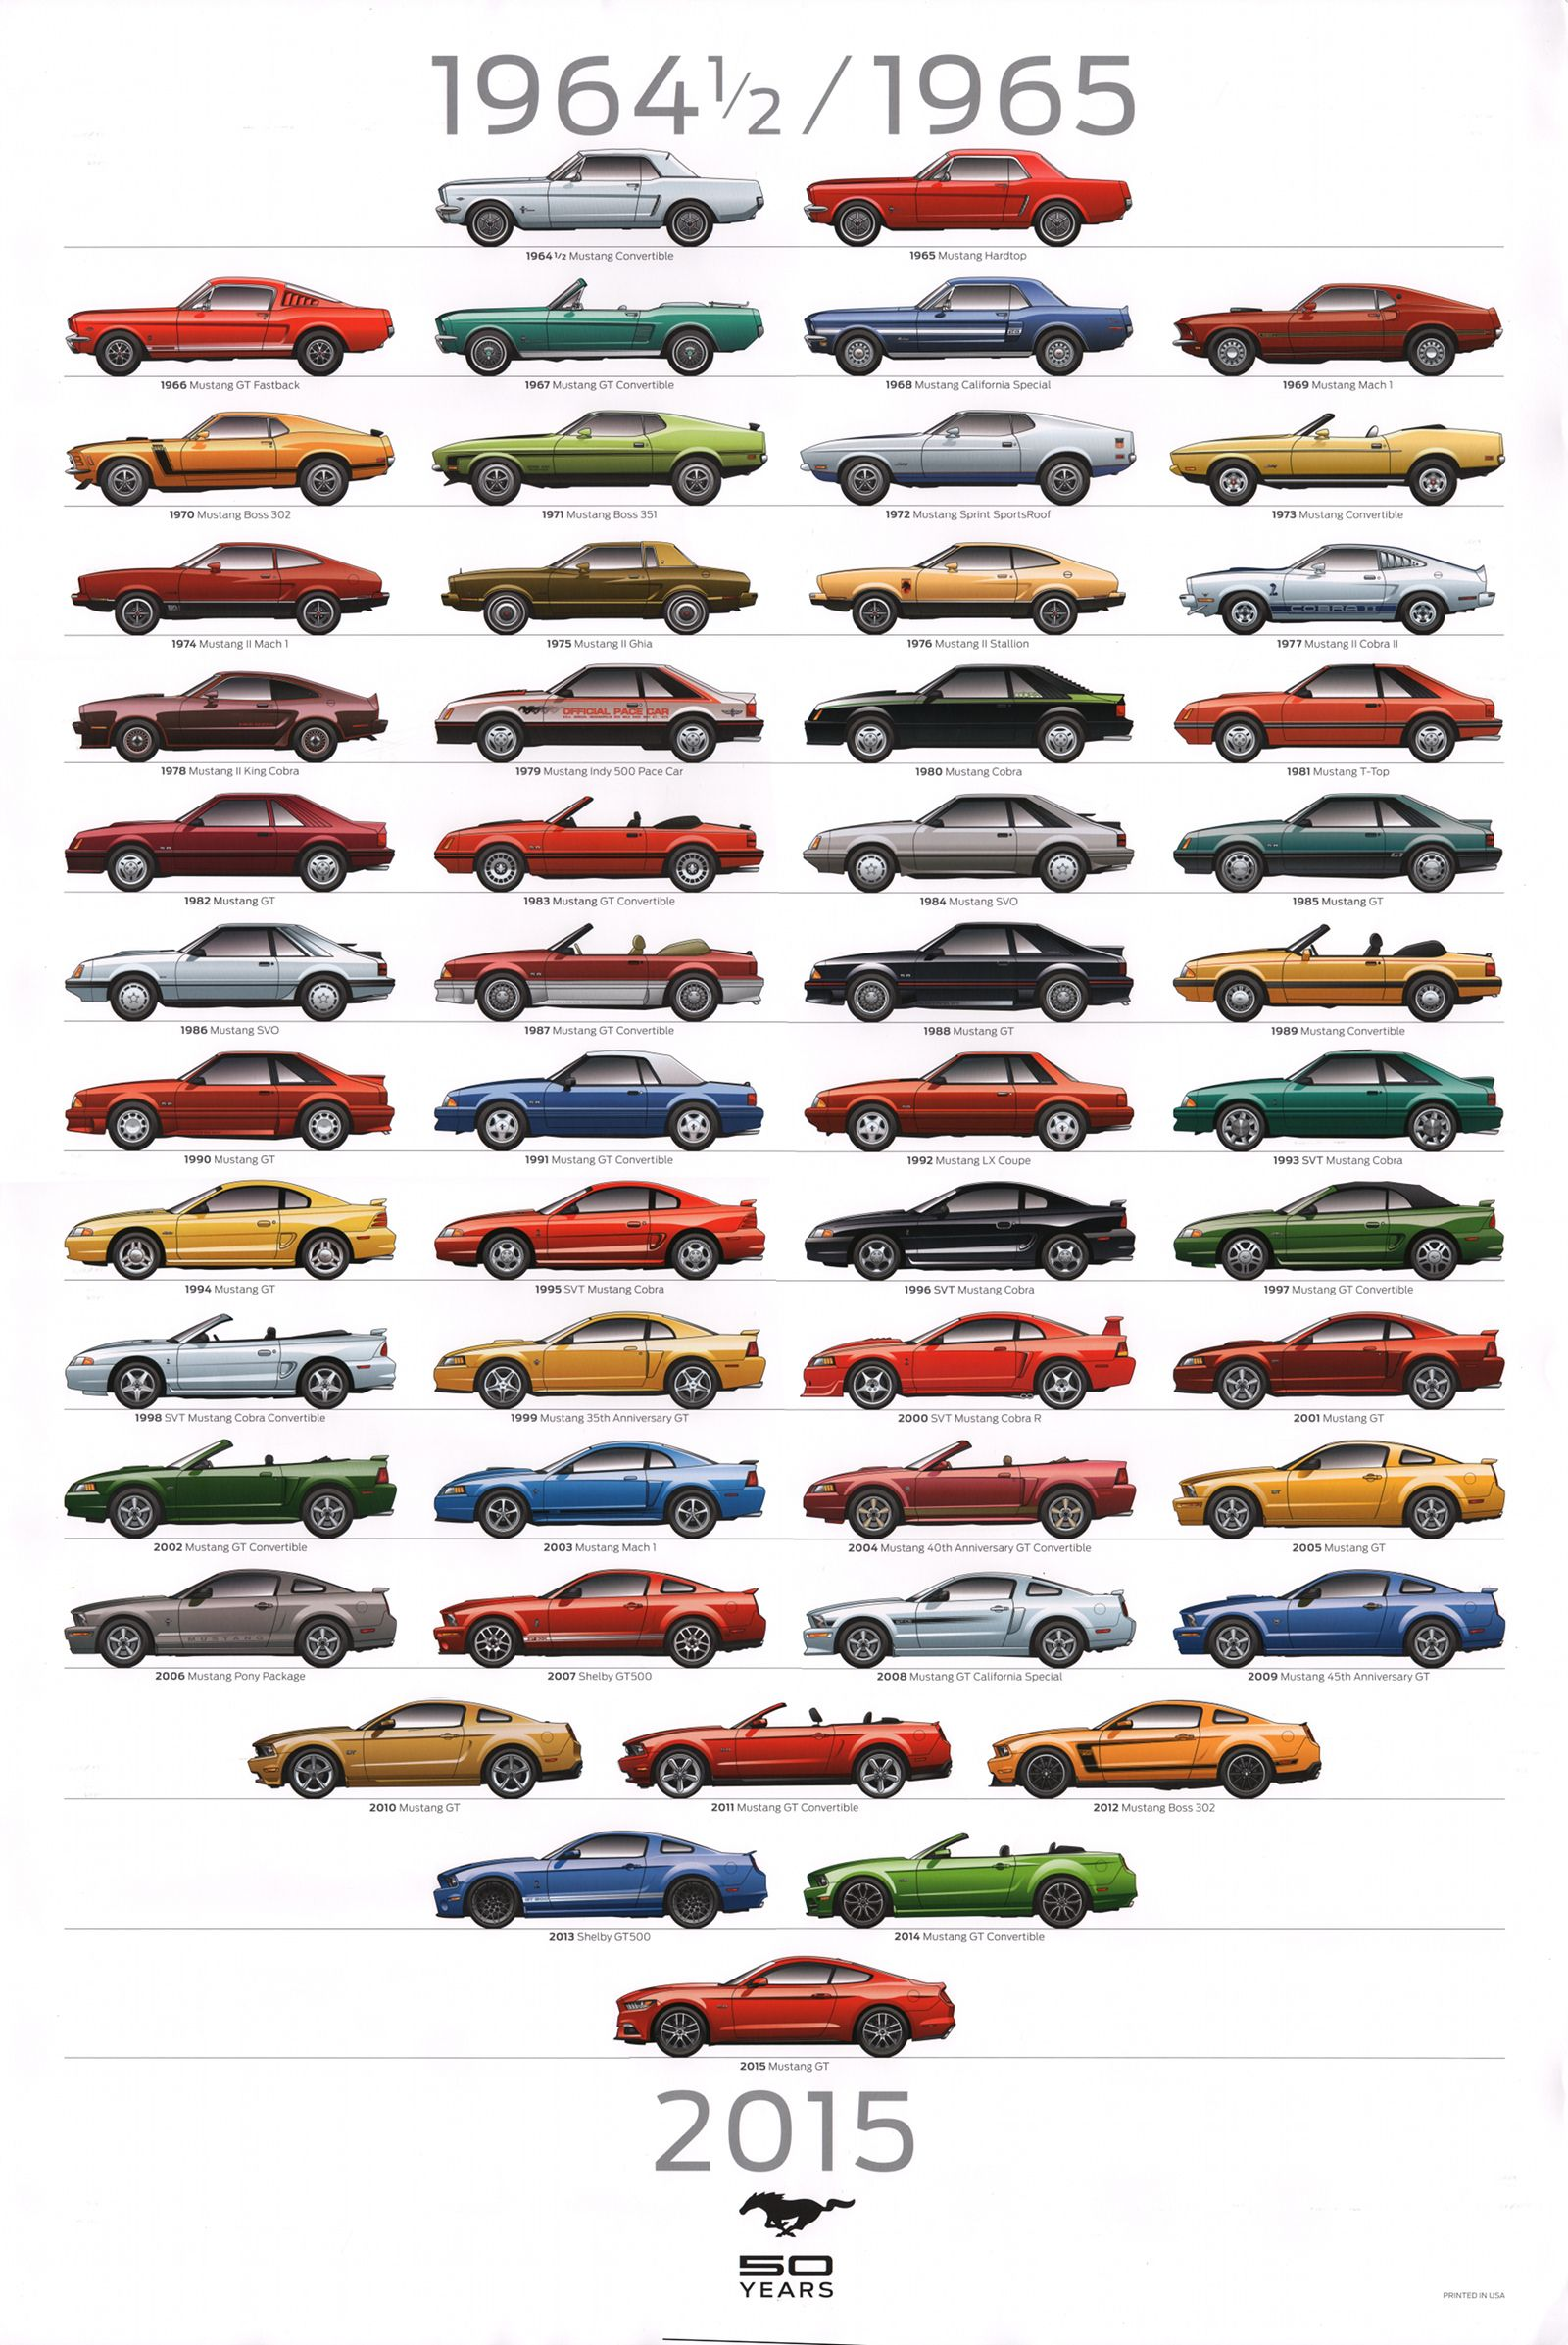 2015 mustang 50th anniversary promotional sales brochure